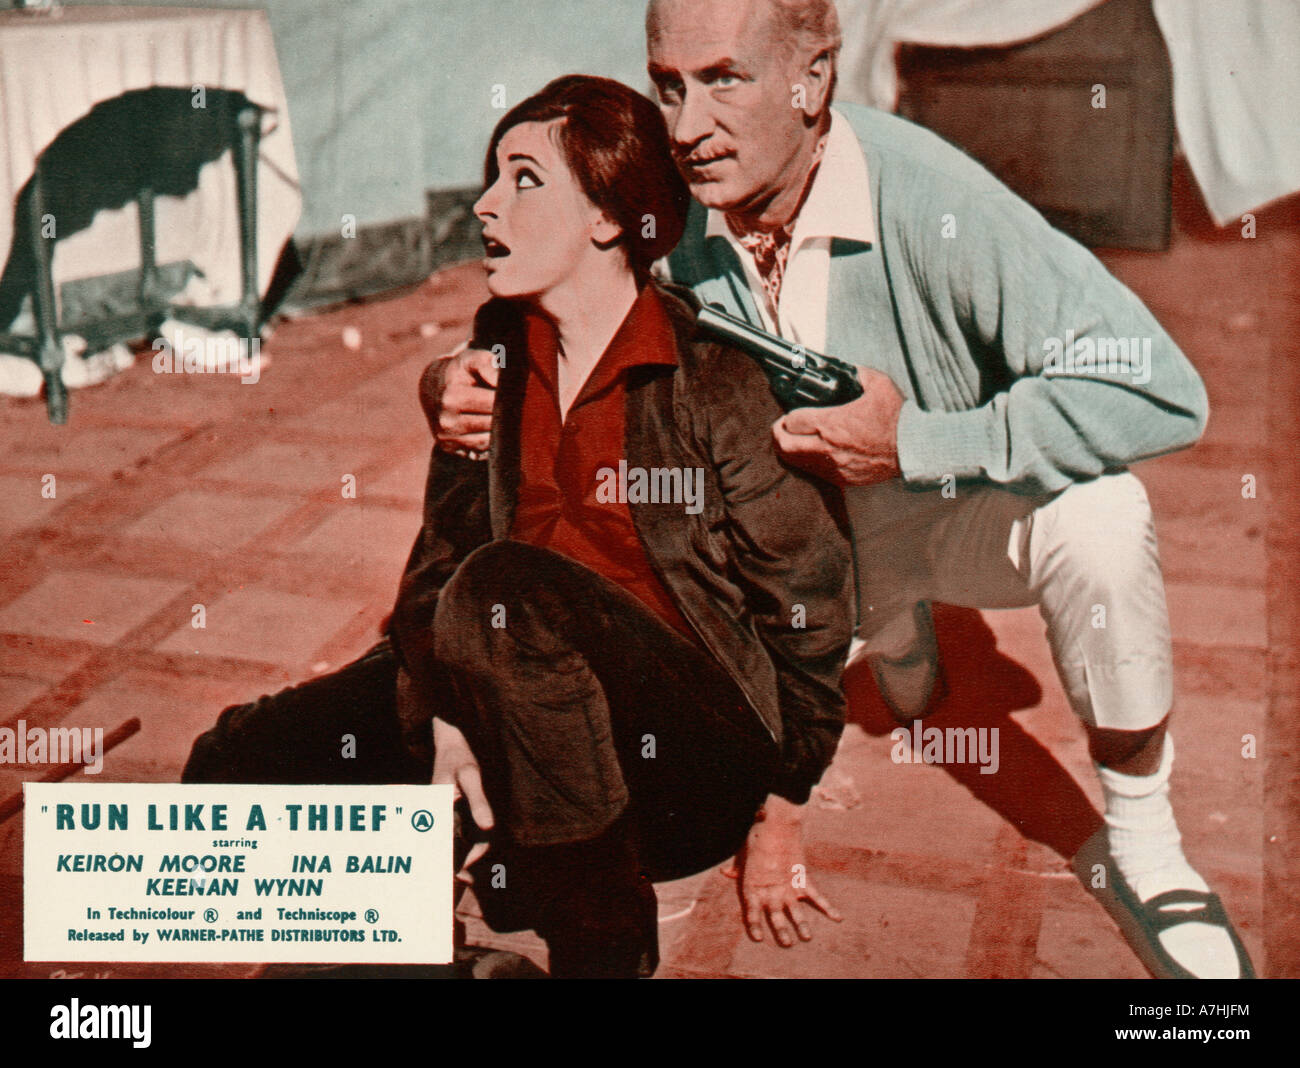 RUN LIKE A THIEF  1968 Coral Productions film with Keenan Wynn and Ina Balin - Stock Image